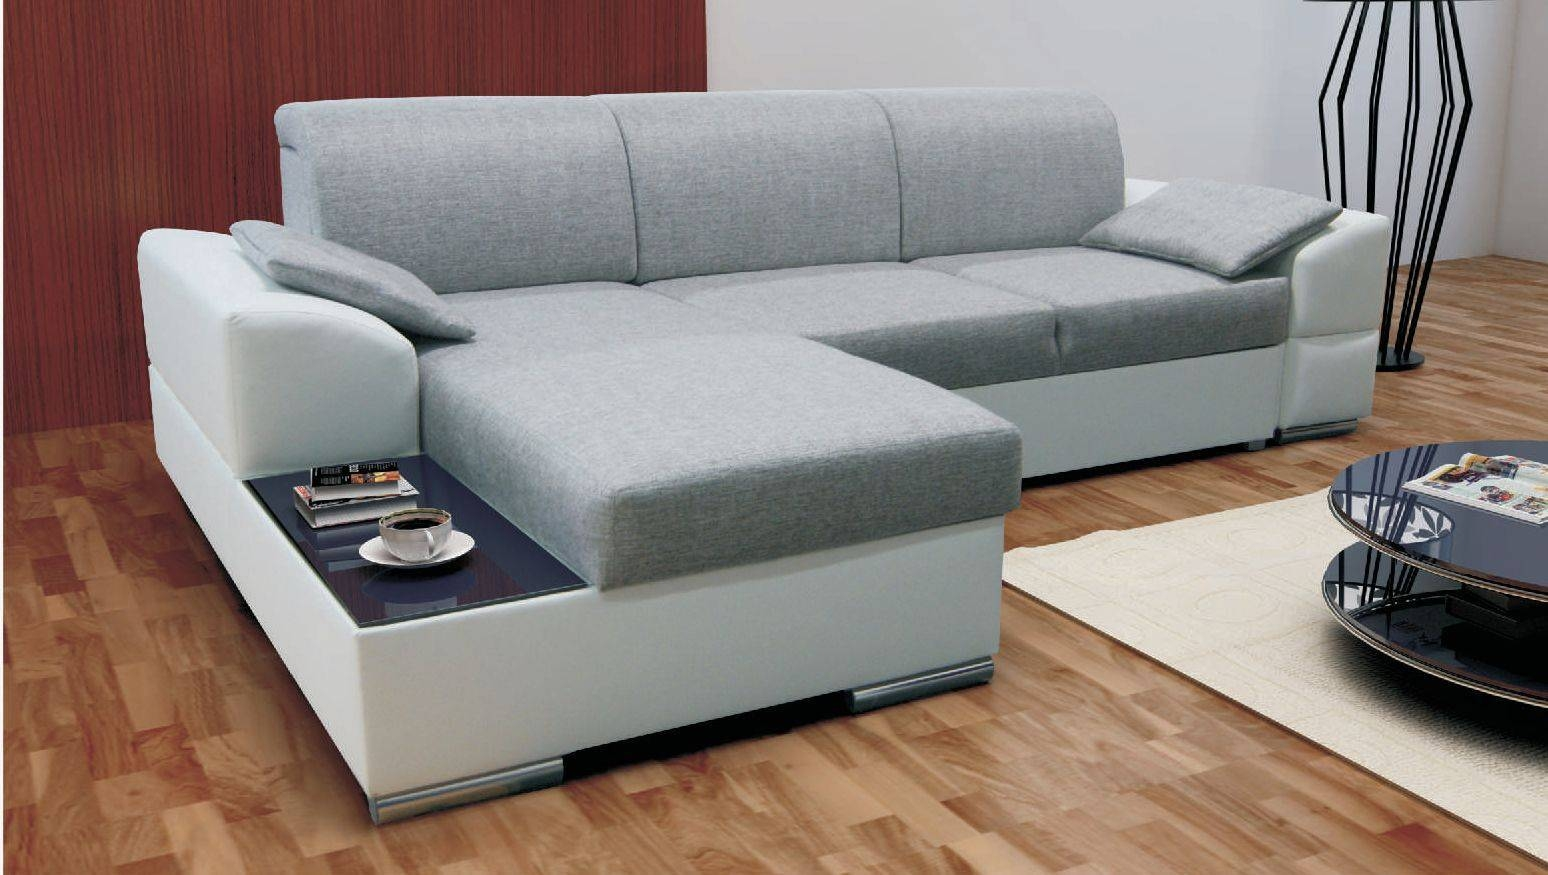 Sofas Center : Unusual Corner Sofa Withrage Picture Design Large pertaining to Unique Corner Sofas (Image 24 of 30)